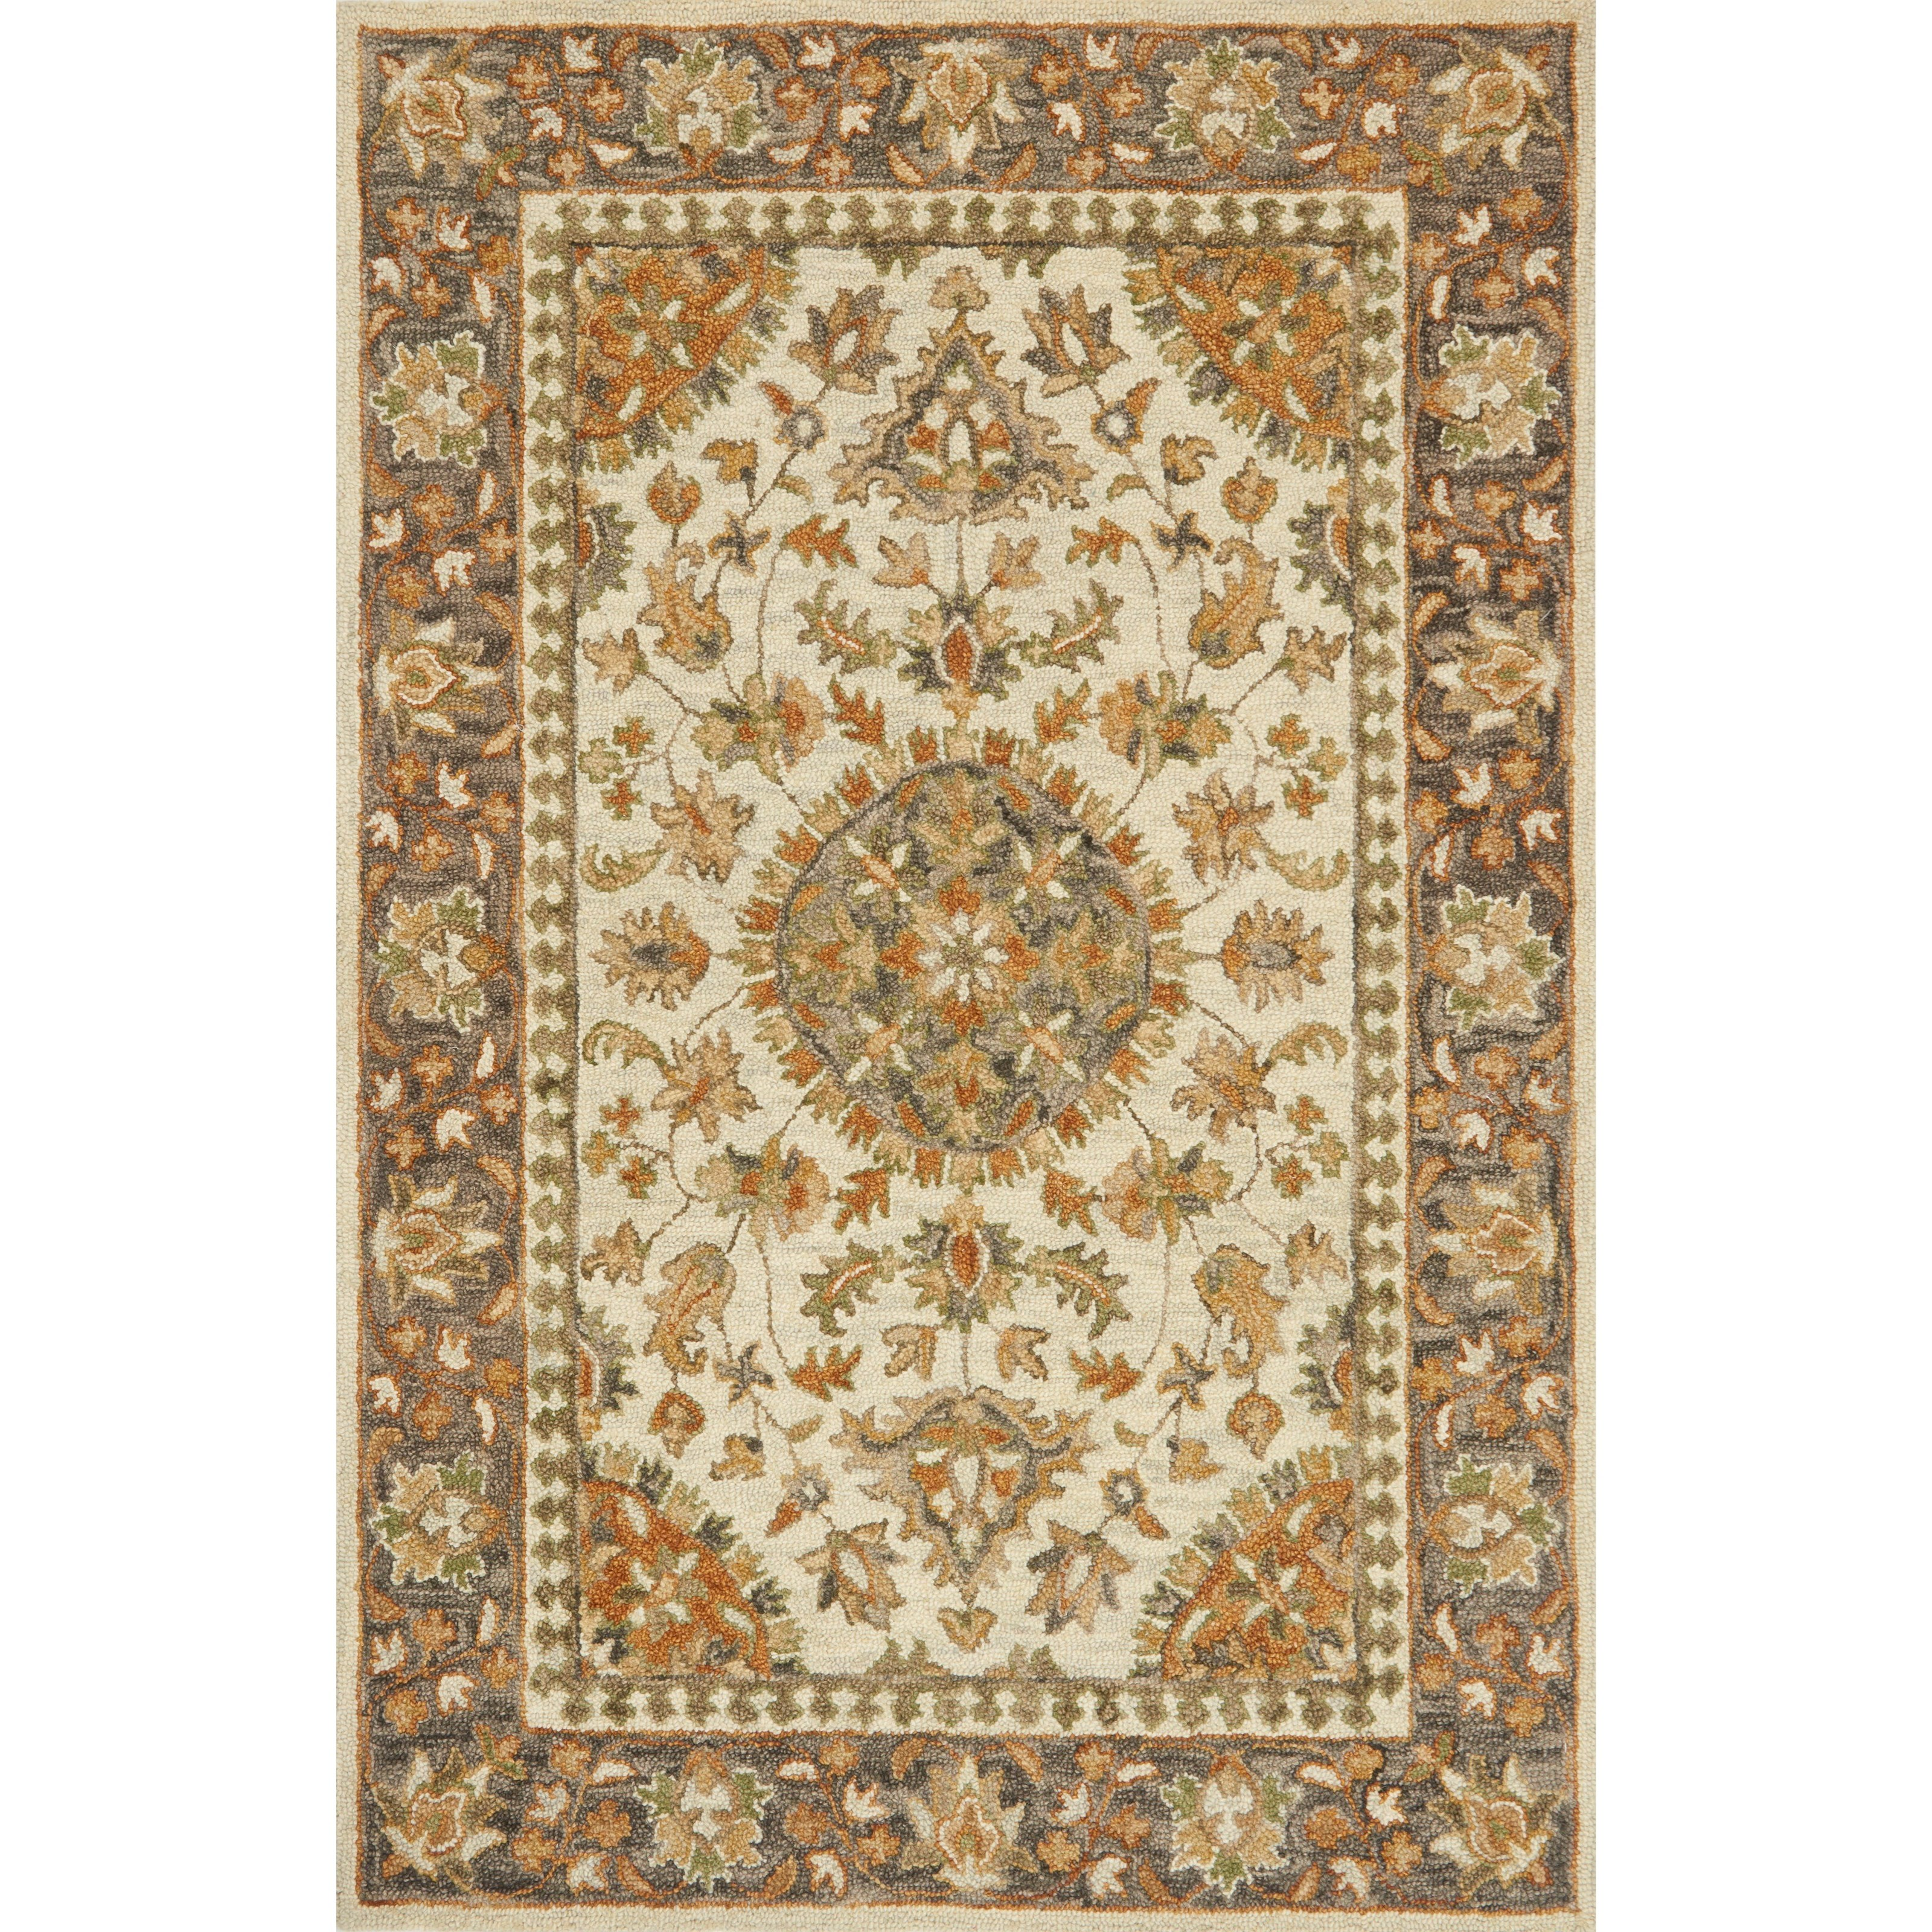 """Victoria 1'6"""" x 1'6""""  Ivory / Charcoal Rug by Loloi Rugs at Sprintz Furniture"""